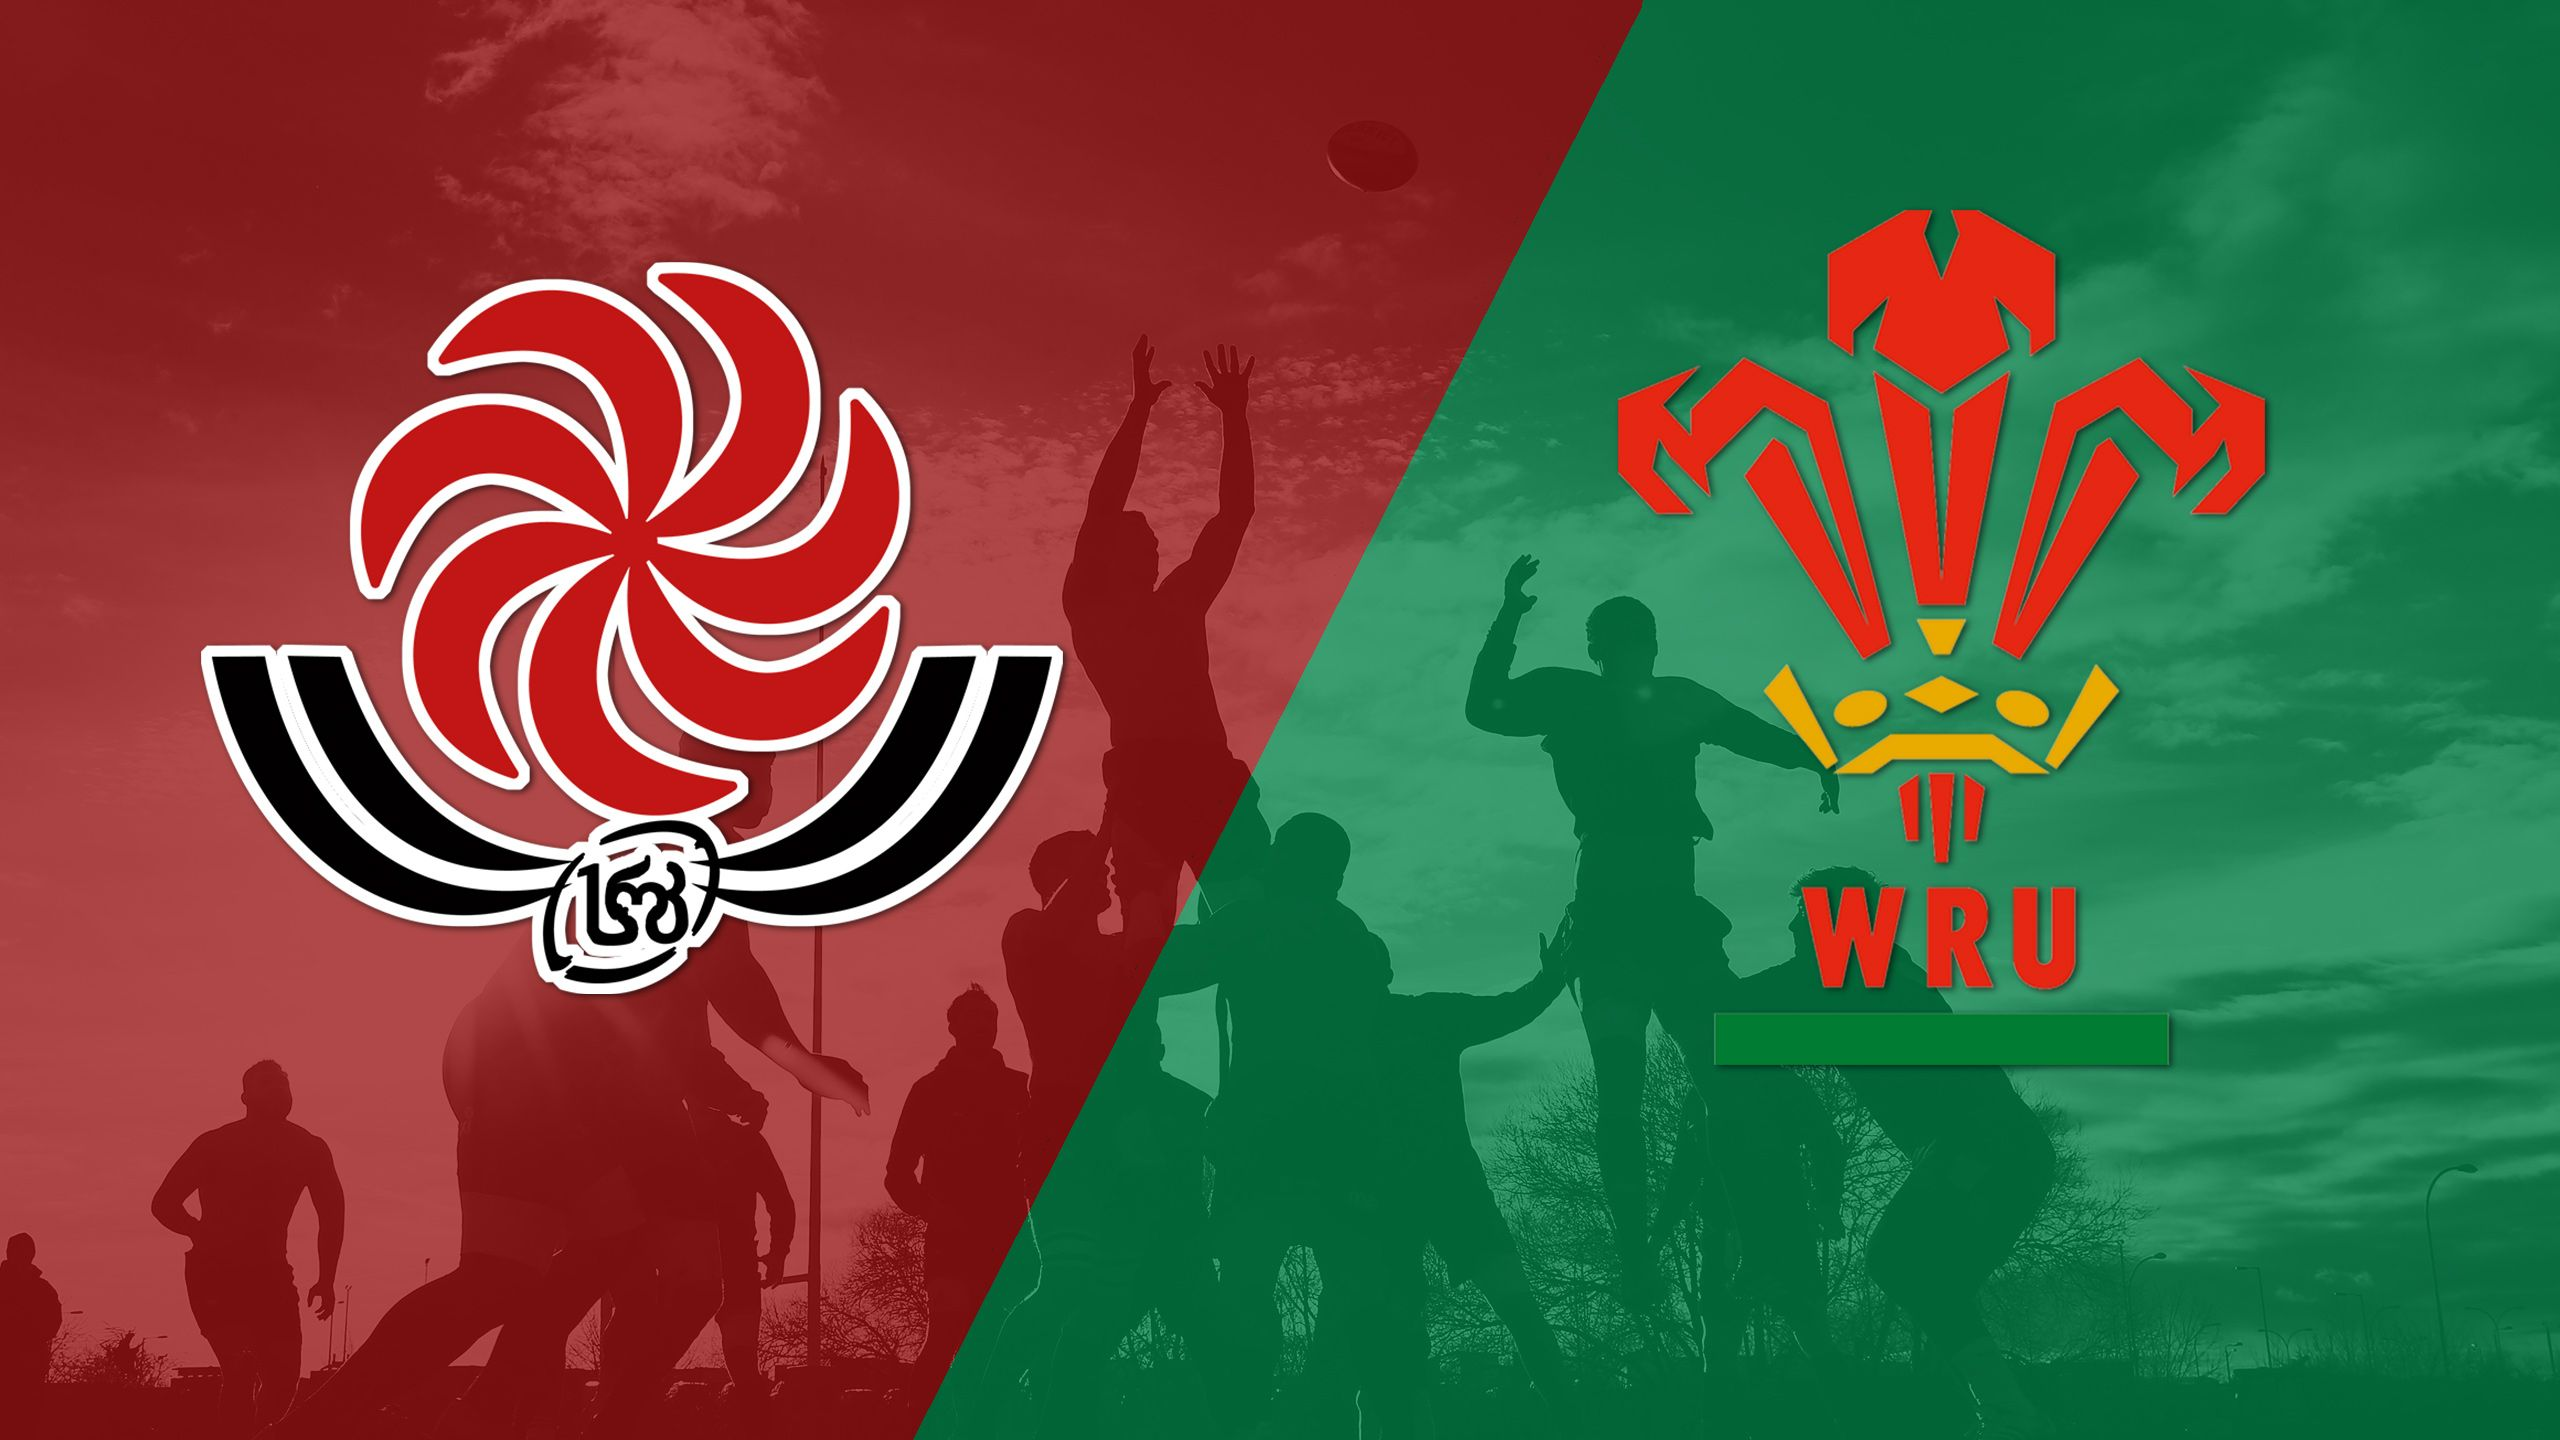 Georgia vs. Wales (International Rugby)